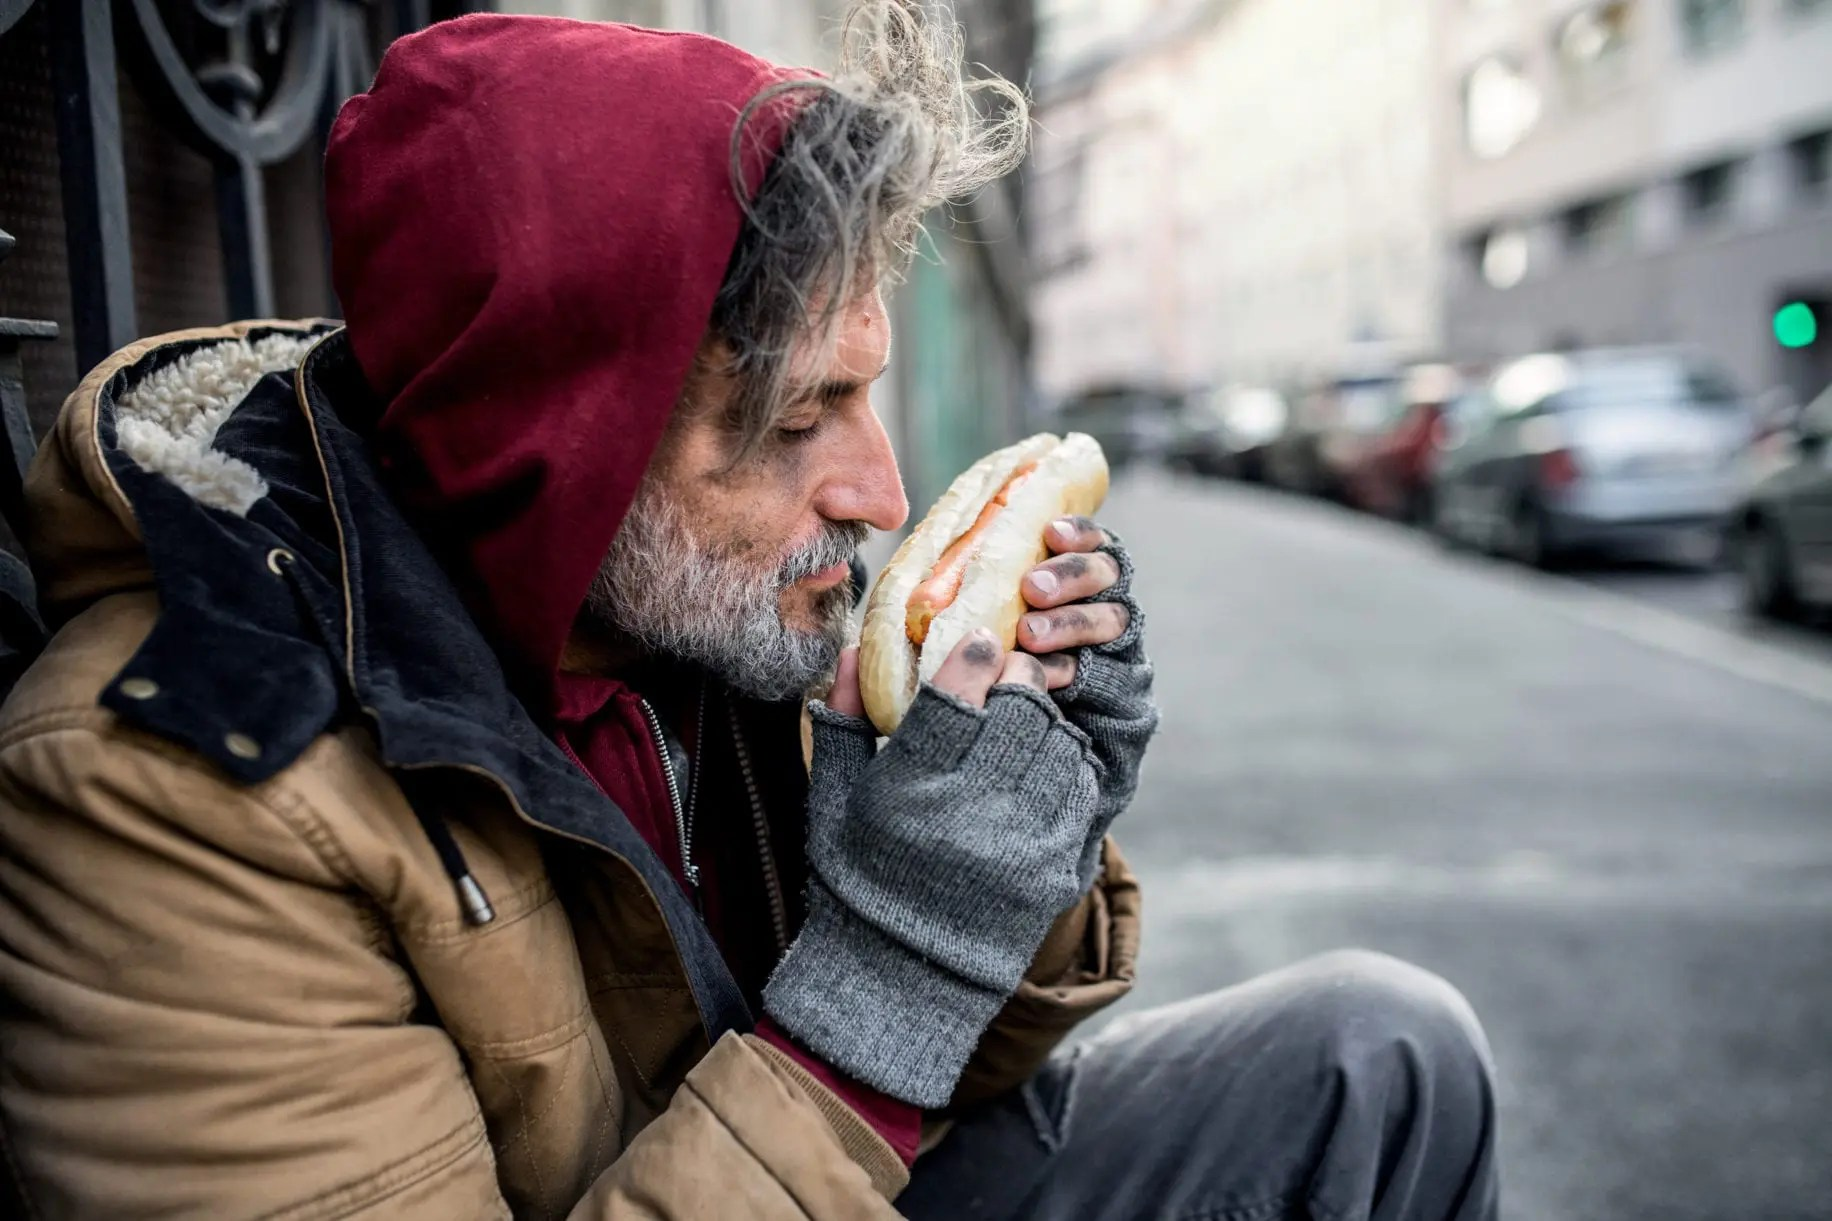 Why There Are Better Alternatives Than Punitive Policies Targeting Homeless People